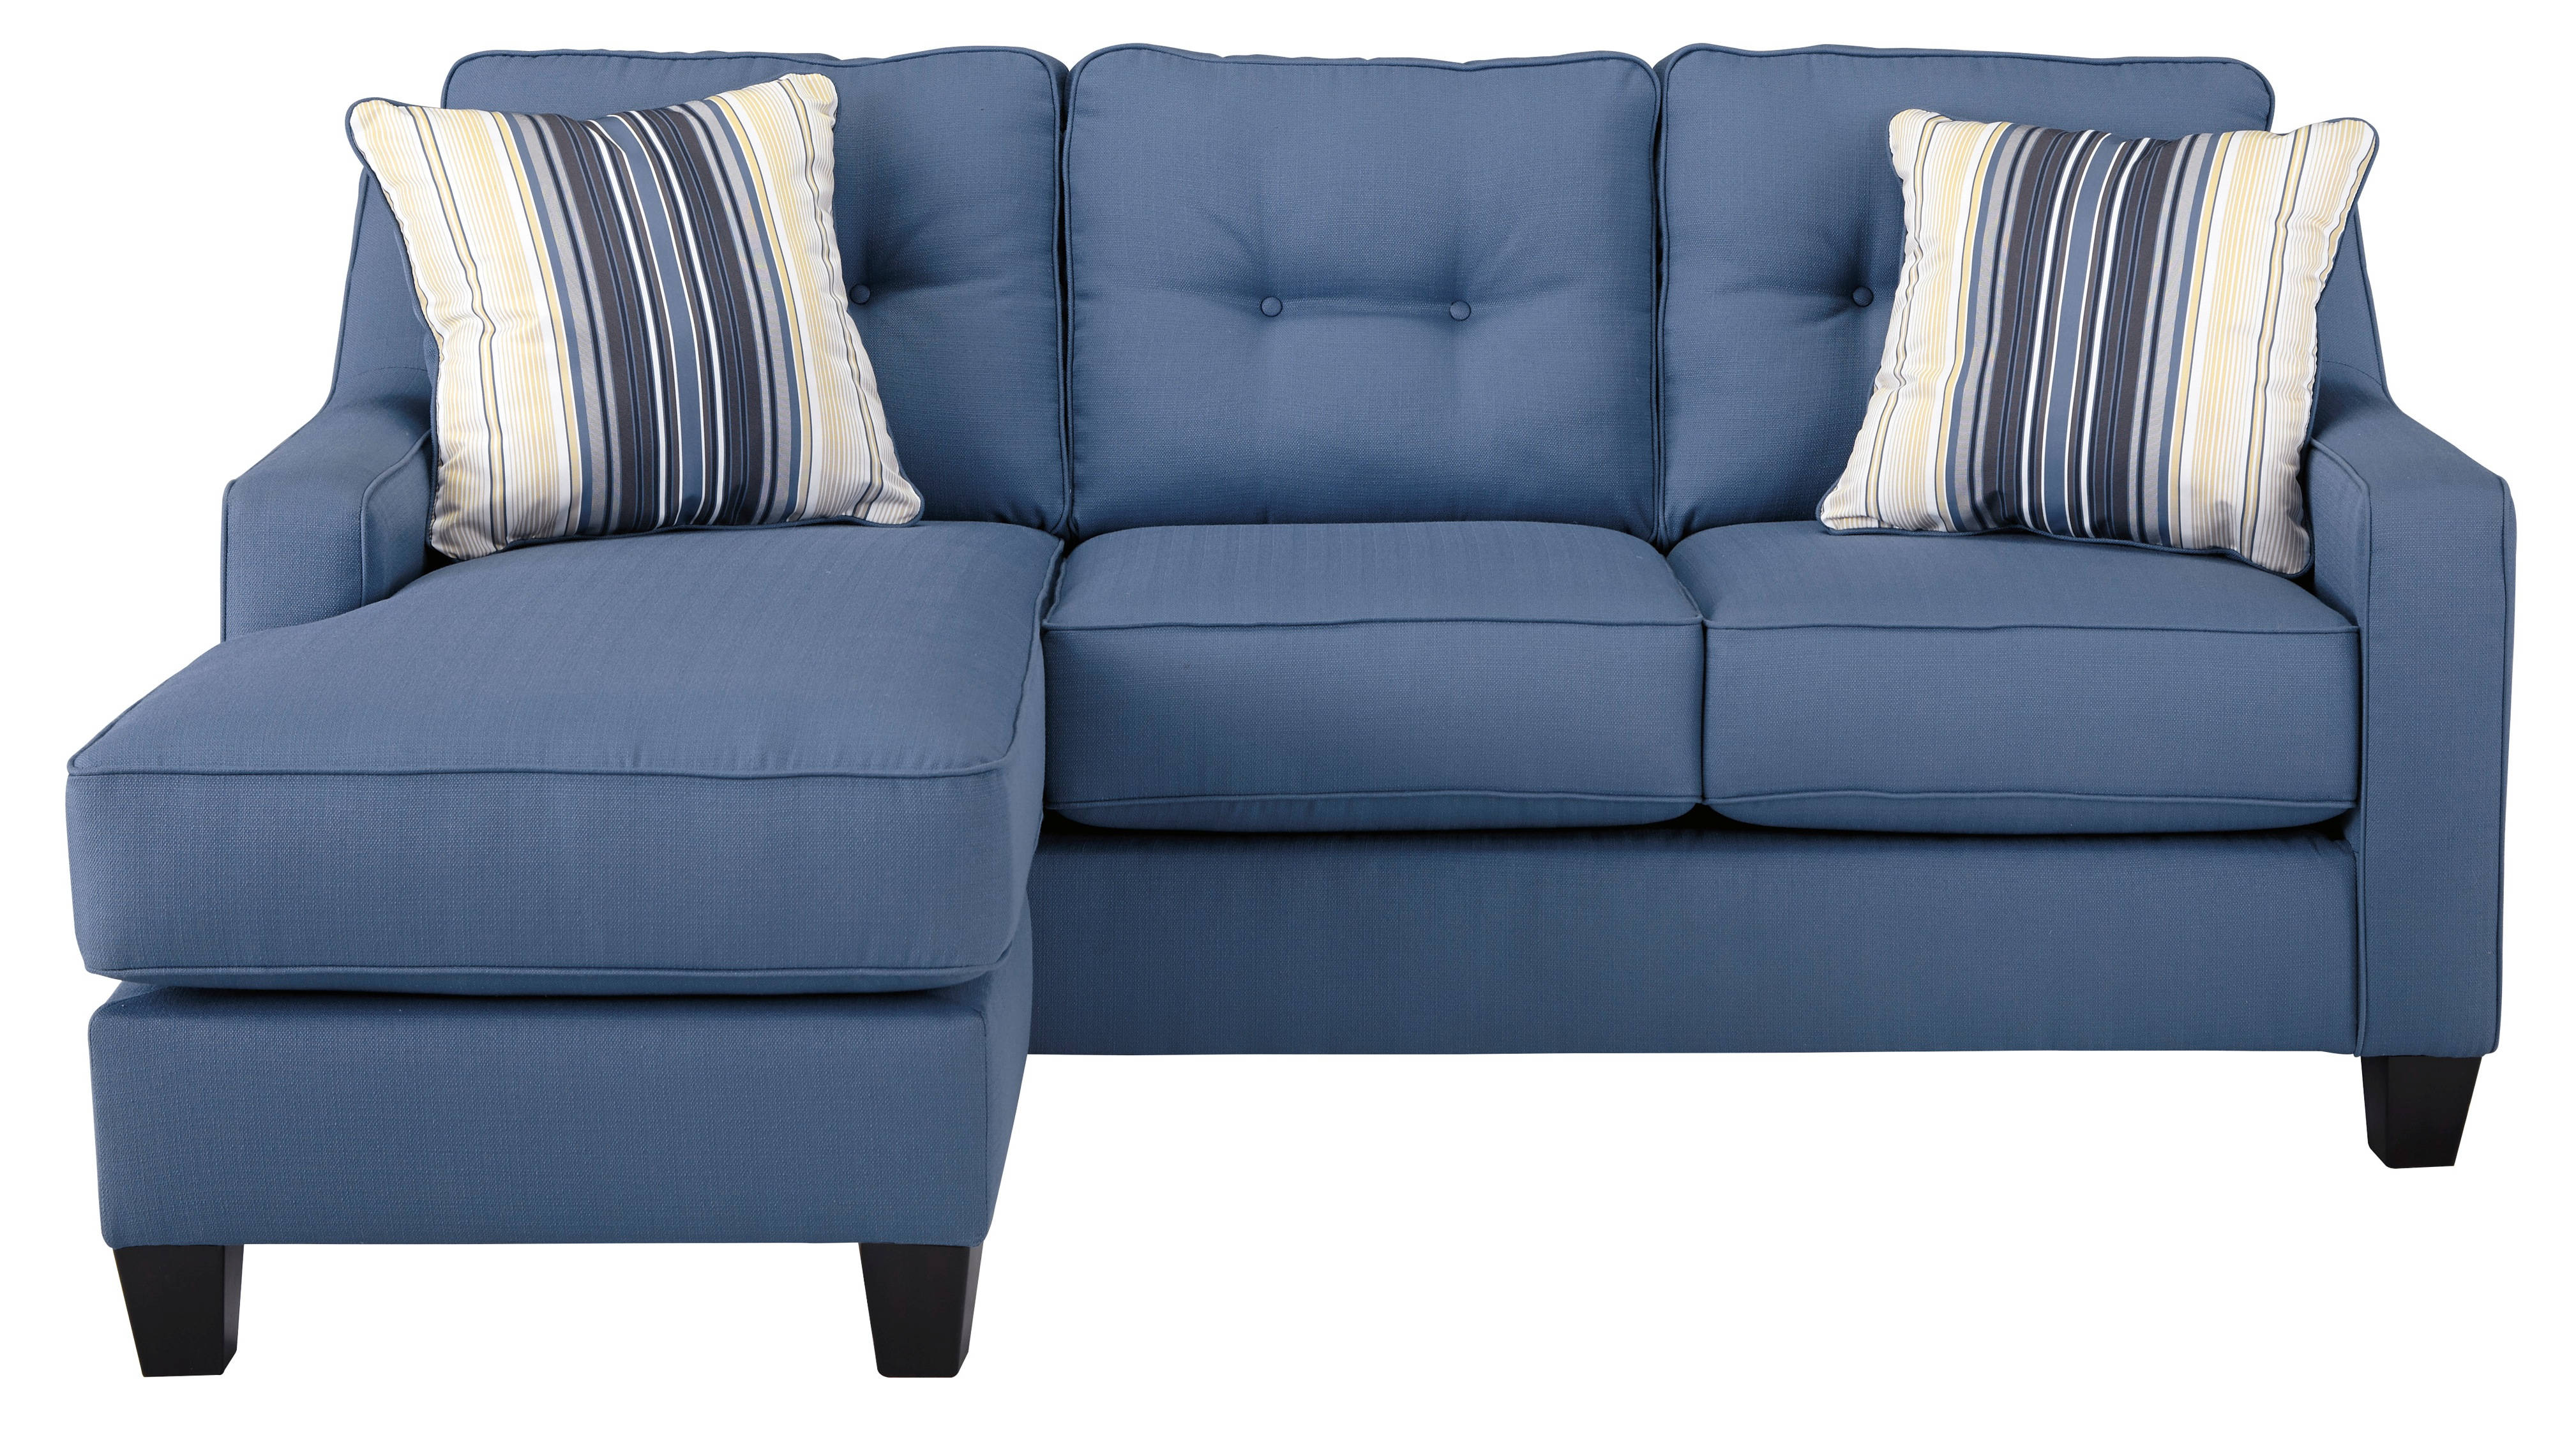 new style 75ab7 5c1ae Ashley Furniture Aldie Nuvella Blue Sofa Chaise | The Classy ...